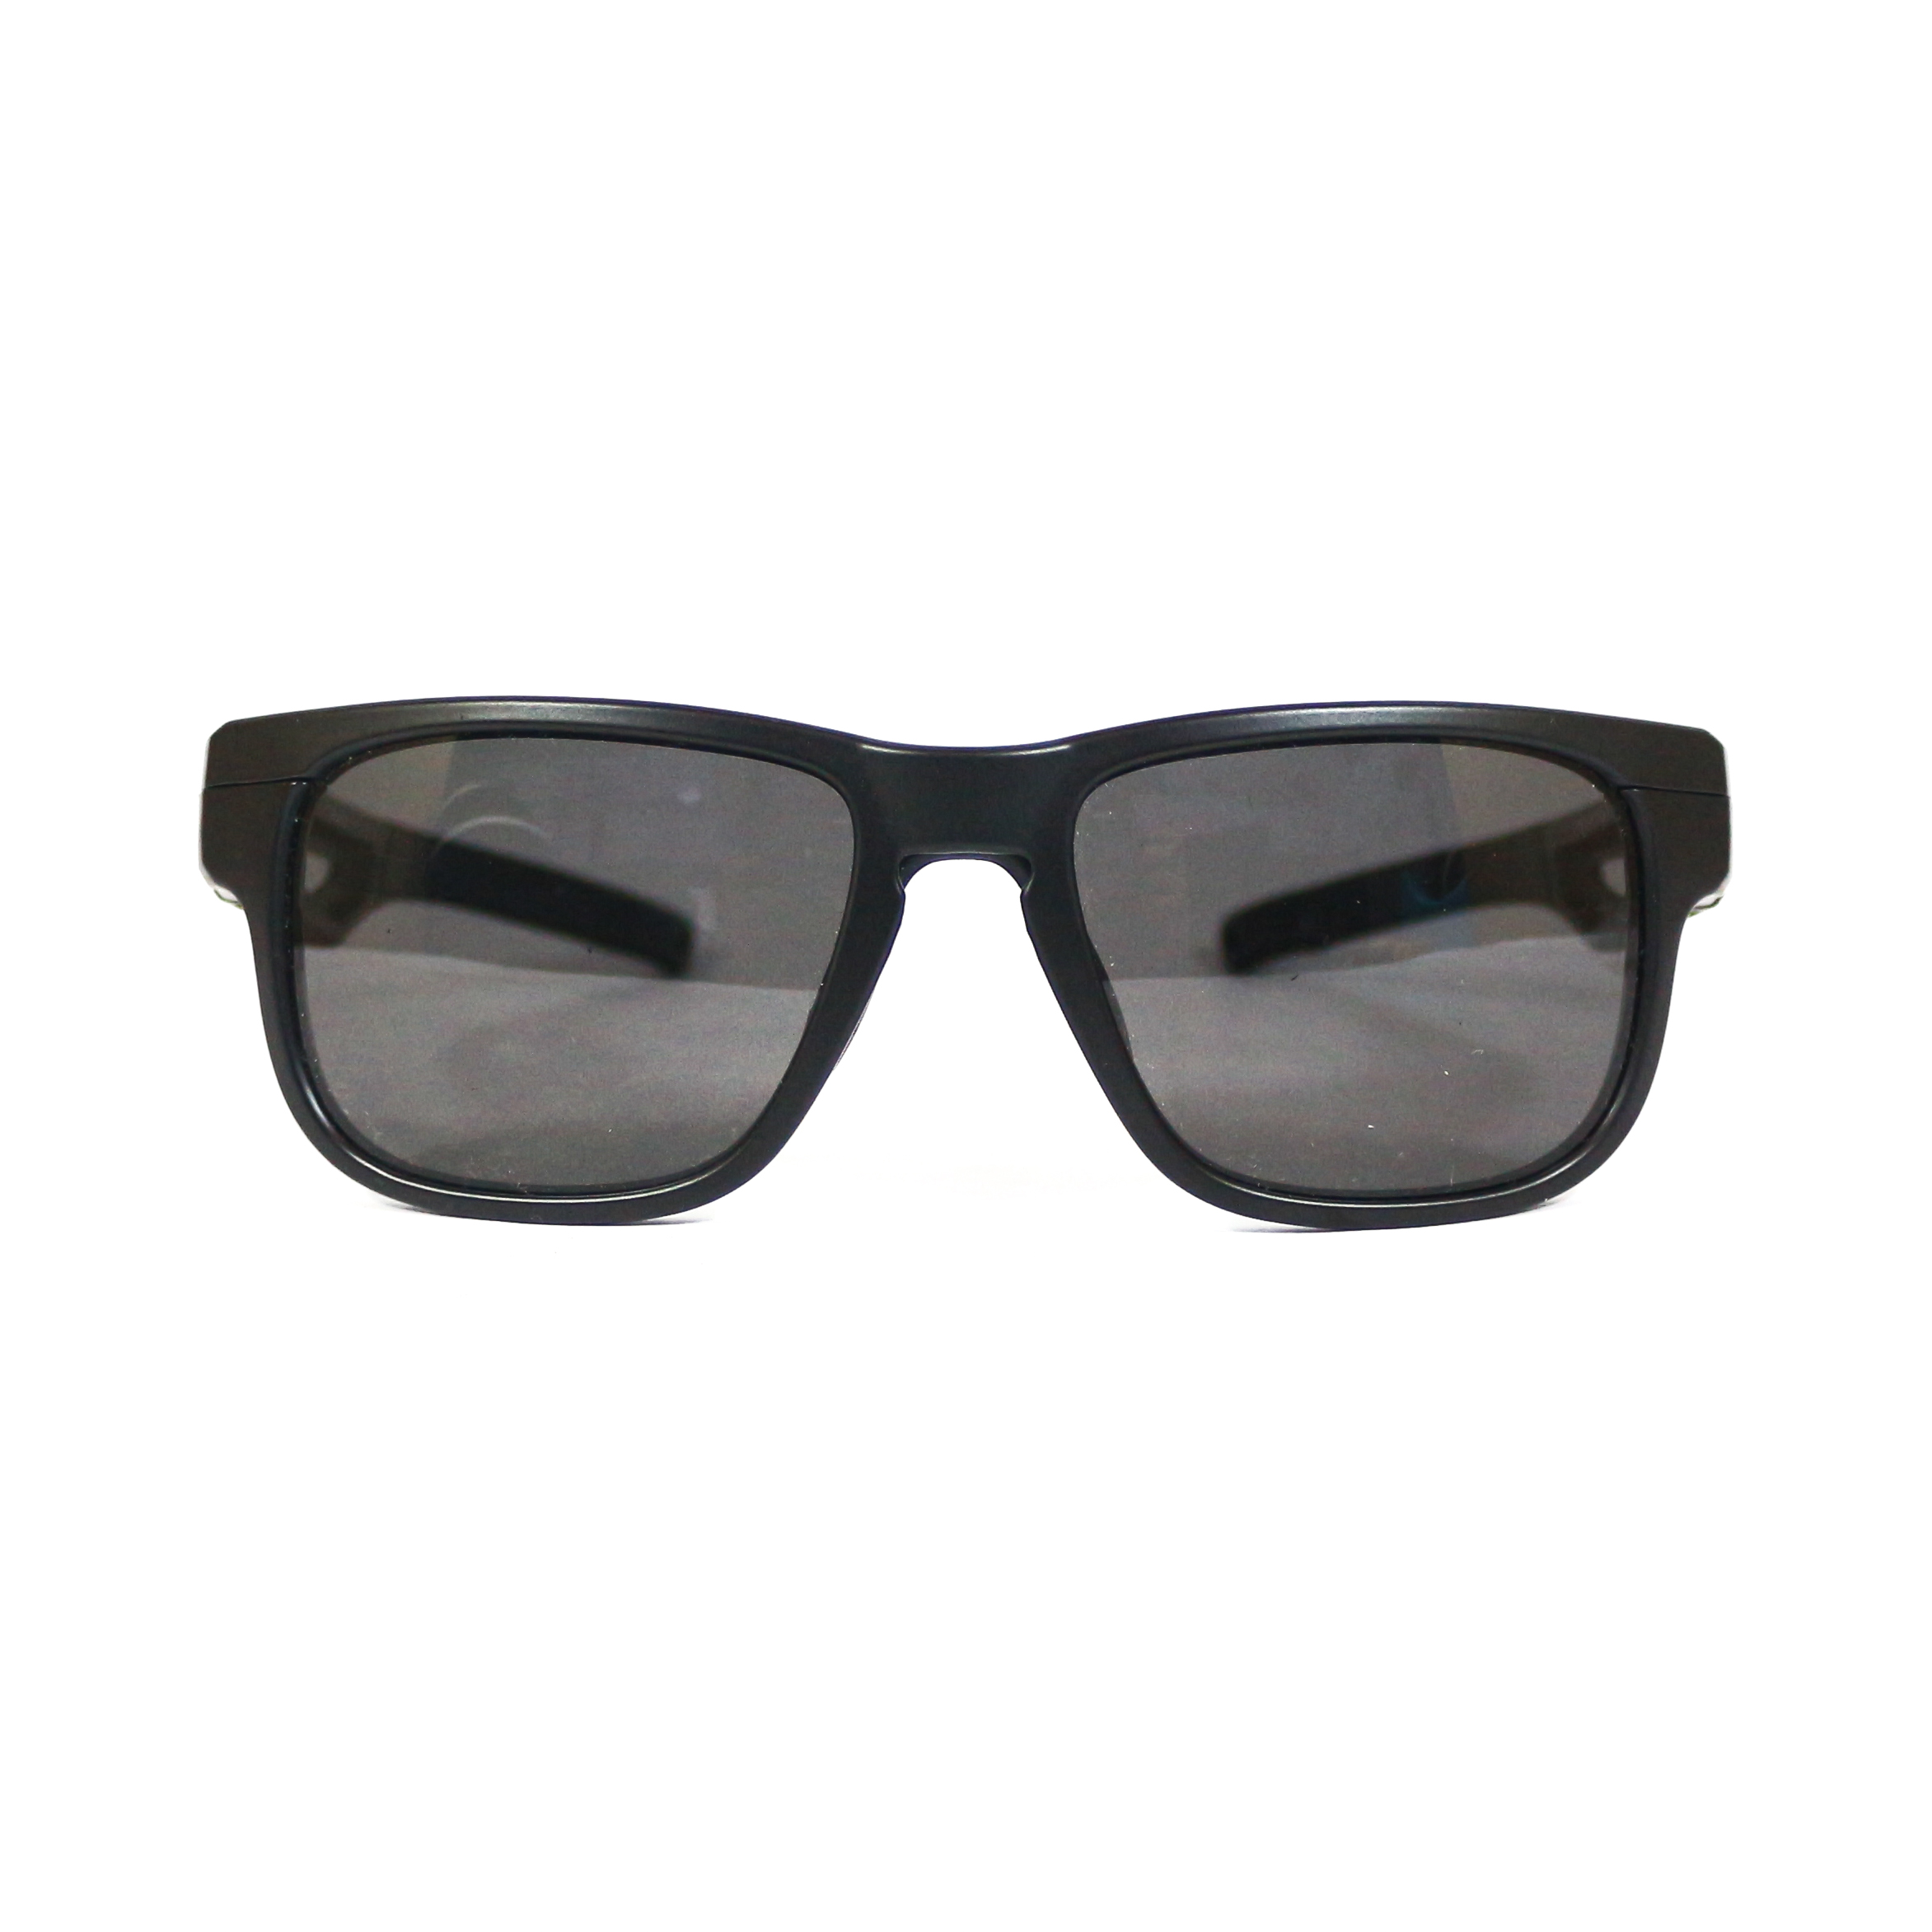 Zeal Polarised Fishing Sunglasses Bunny Walk BW-0180F Matt Blk /Gray (0808)